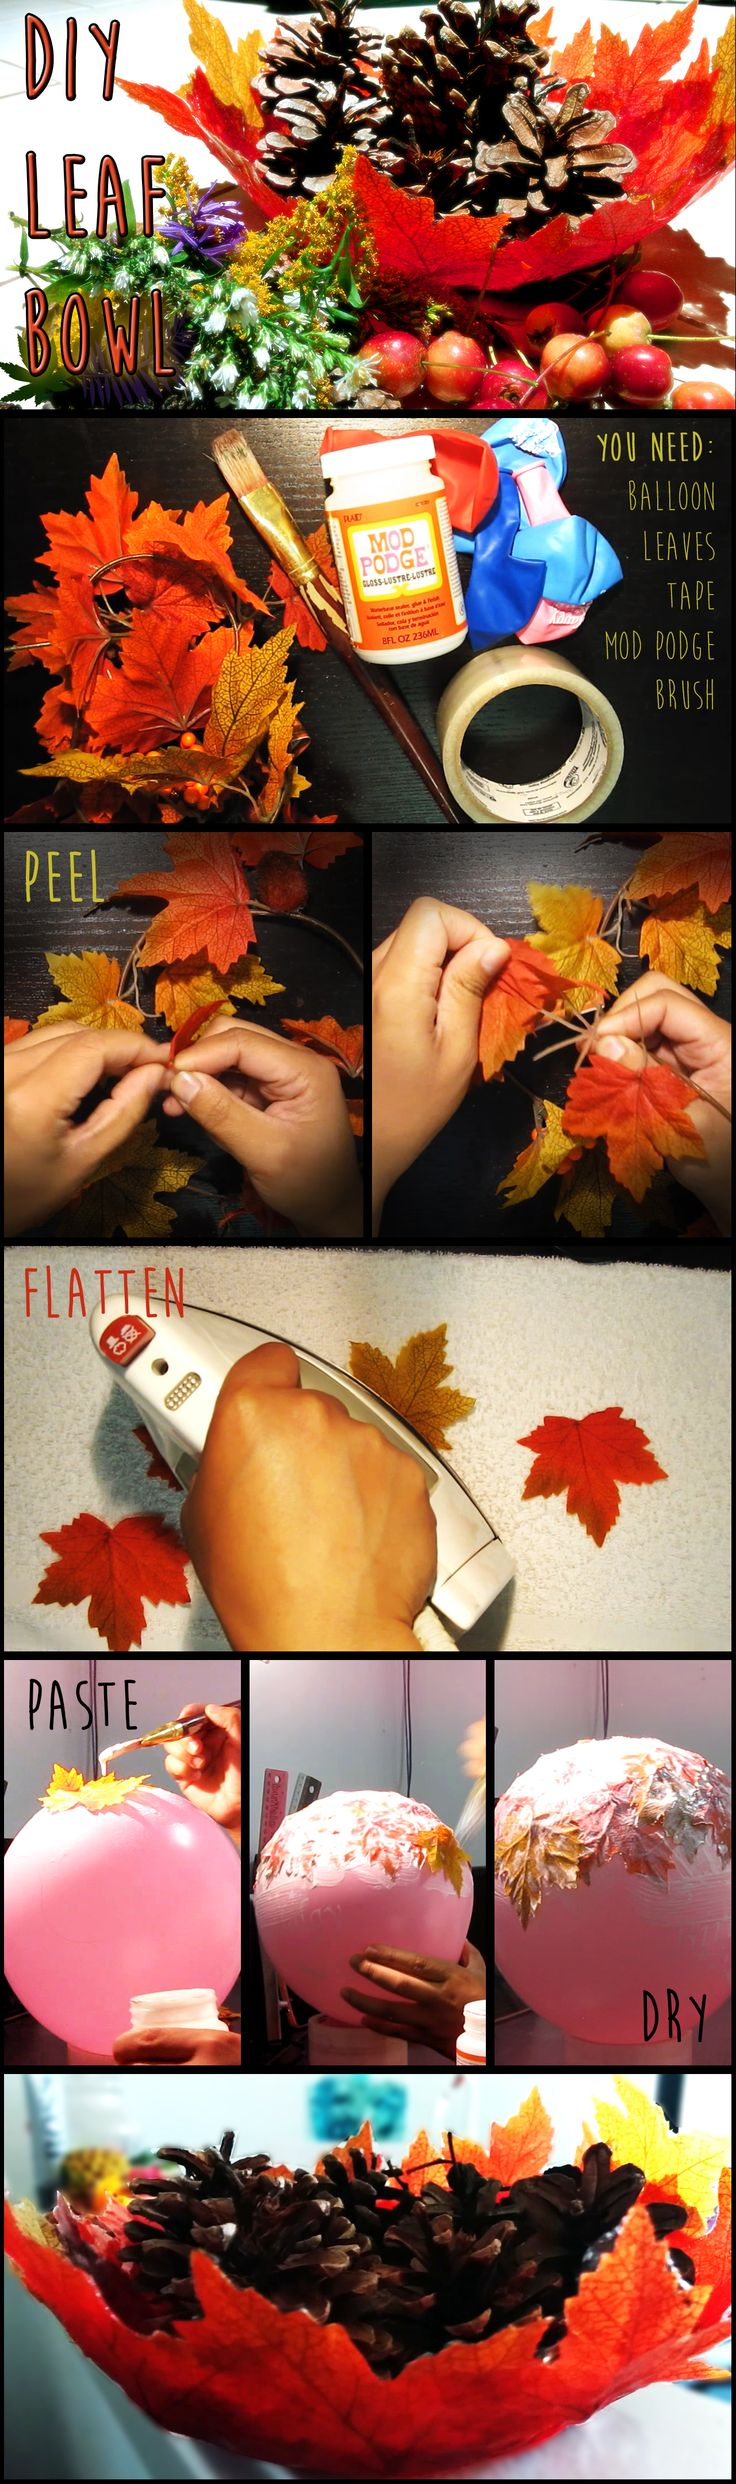 DIY Room Decor - Autumn Leaf Bowl Made from a balloon, leaves, and mod podge. Great addition to your fall decorations around the house. Use it to hold candy, potpourri, or ornaments. http://youtu.be/0Ty3cBNZO08